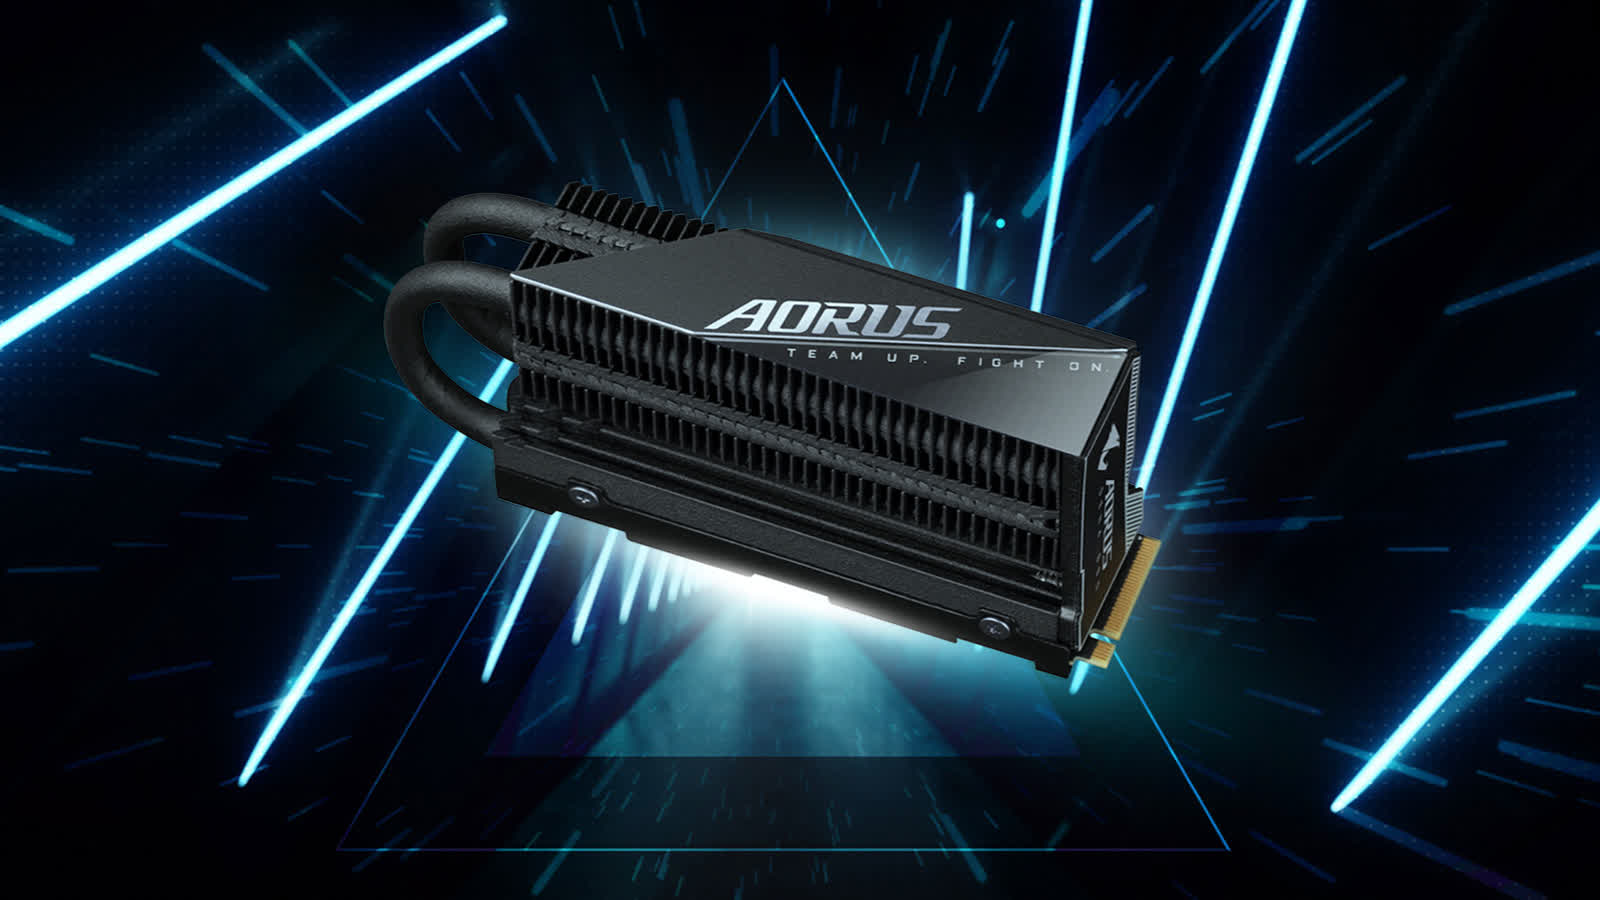 Gigabyte's new high-performance m.2 NVMe SSD boasts of 7GB/s read speeds that won't throttle